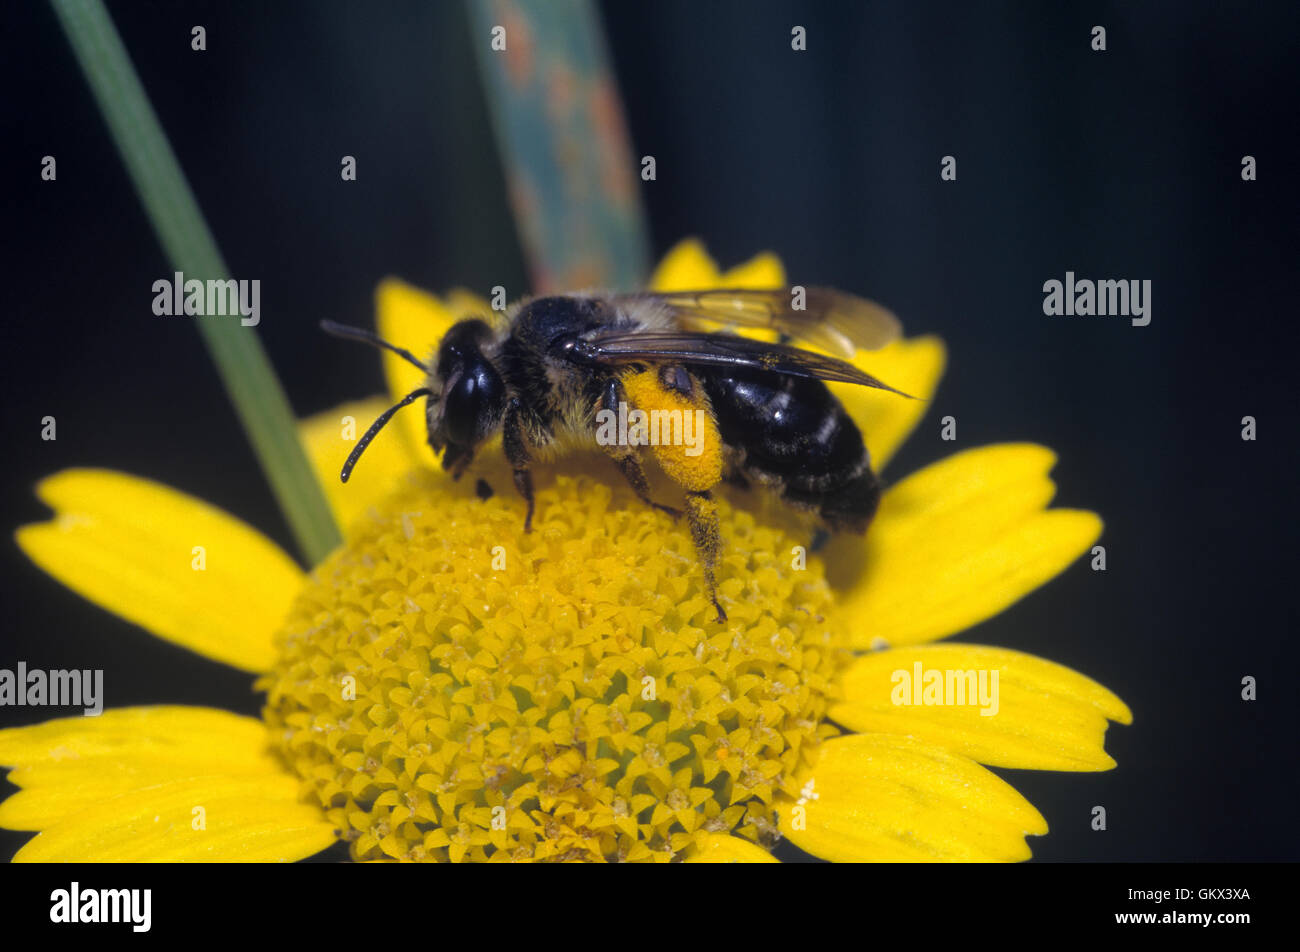 Sweat bee, Halictus rubicundus, on yellow flower with rear legs full of pollen. Portugal - Stock Image